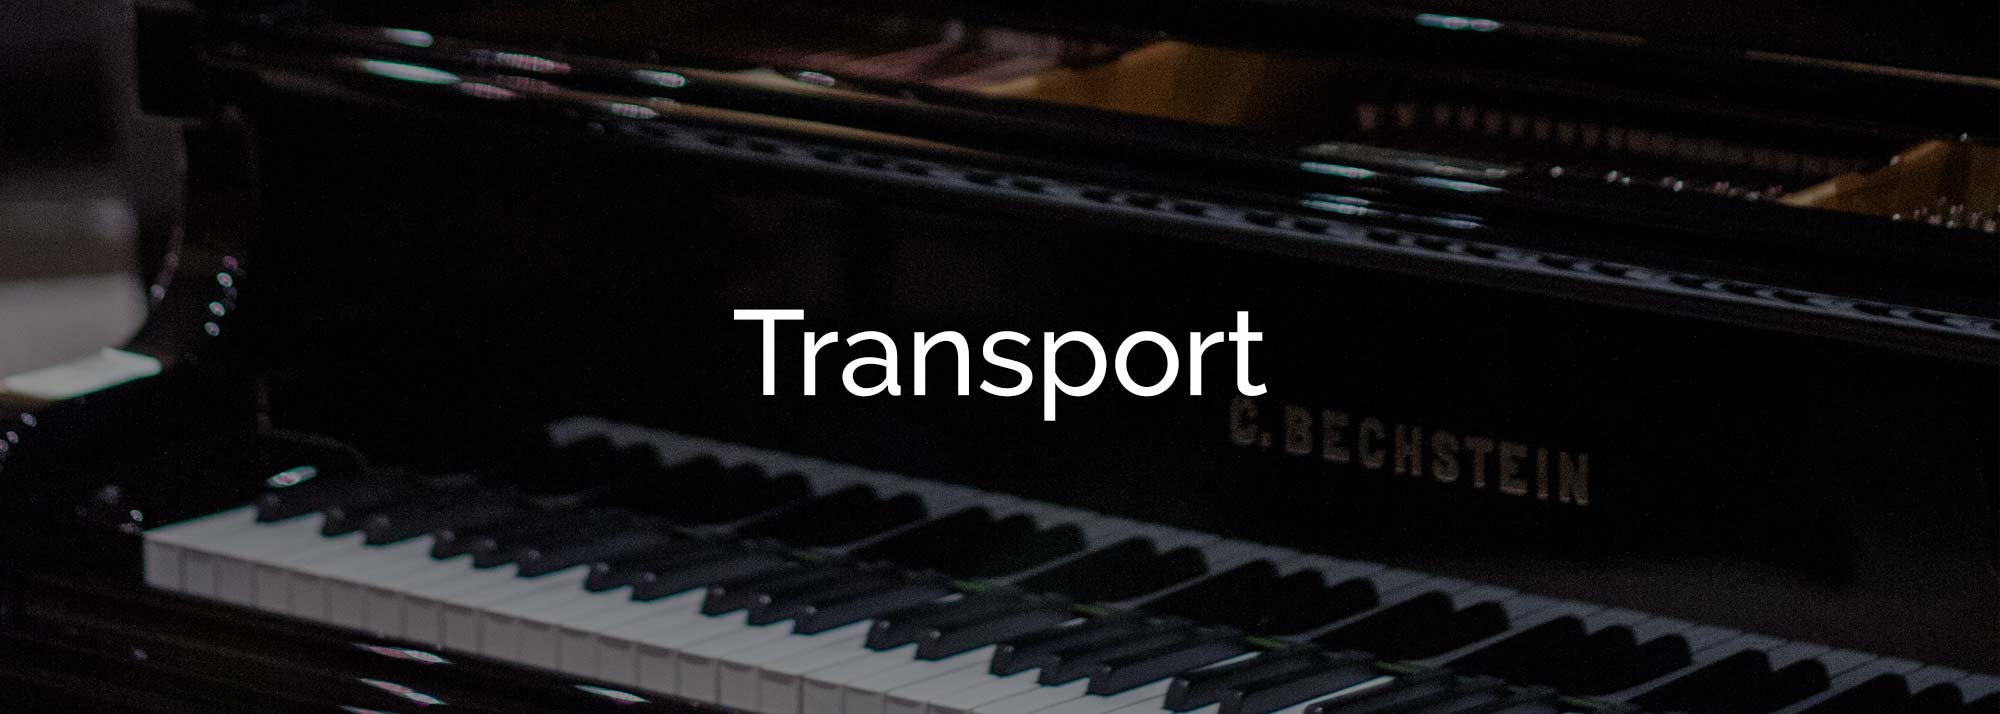 Klavier-Transport & Flügel-Transport | Piano Berretz